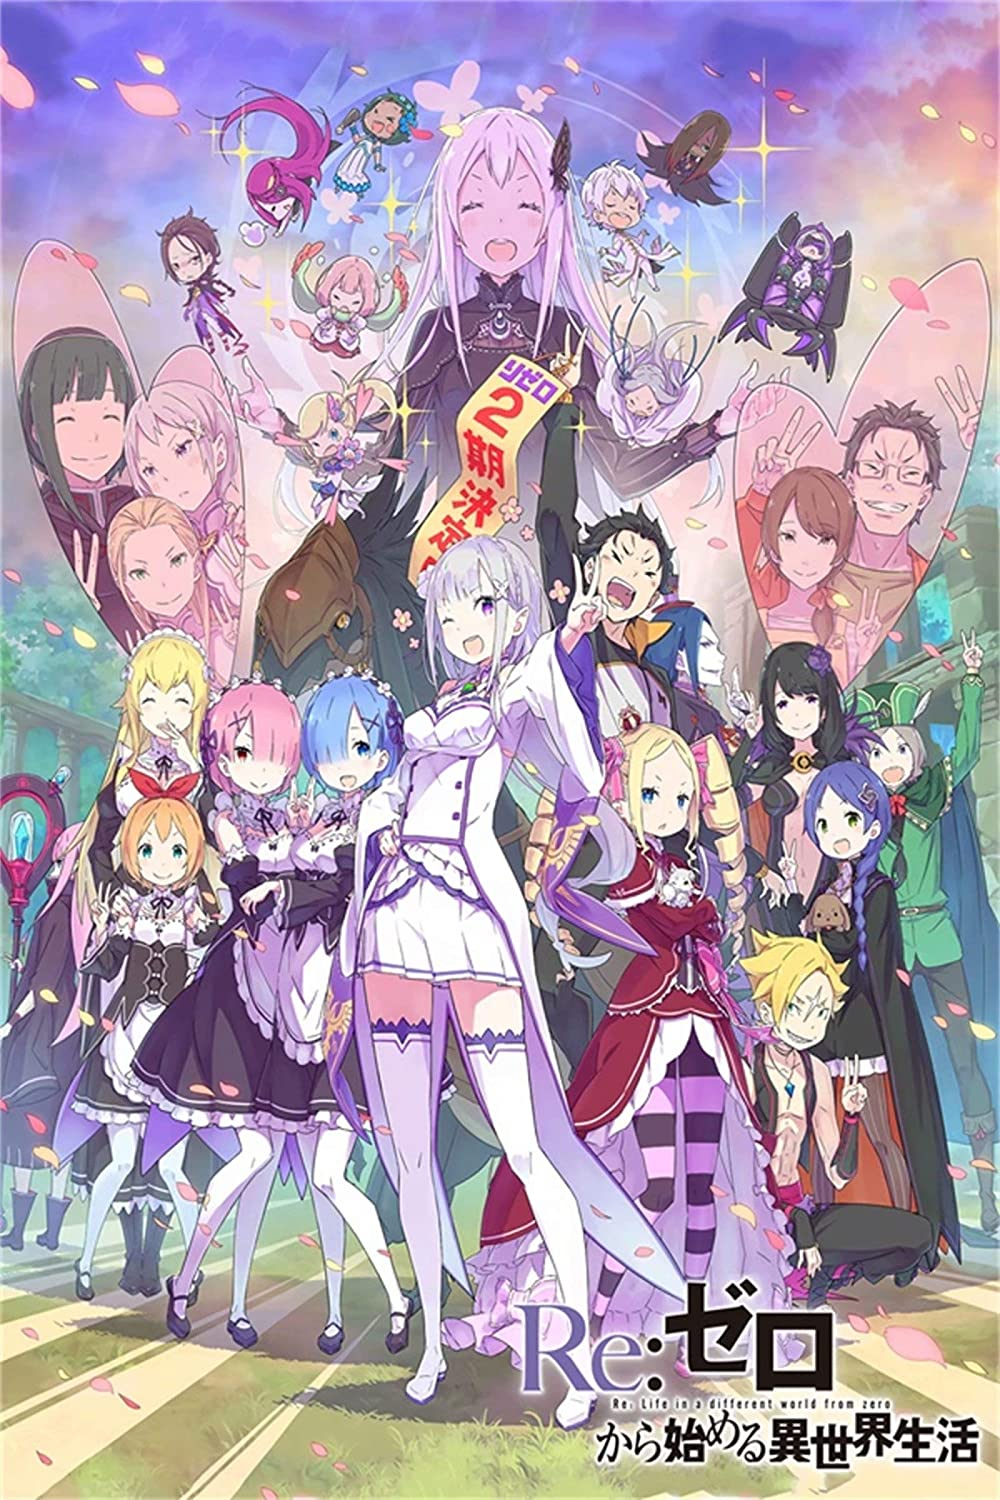 Anime Art Poster - Anime Wall Decoration - Re: Life in a Different World from Zero Poster - Japan Anime Tin Poster 12 x 8 inch